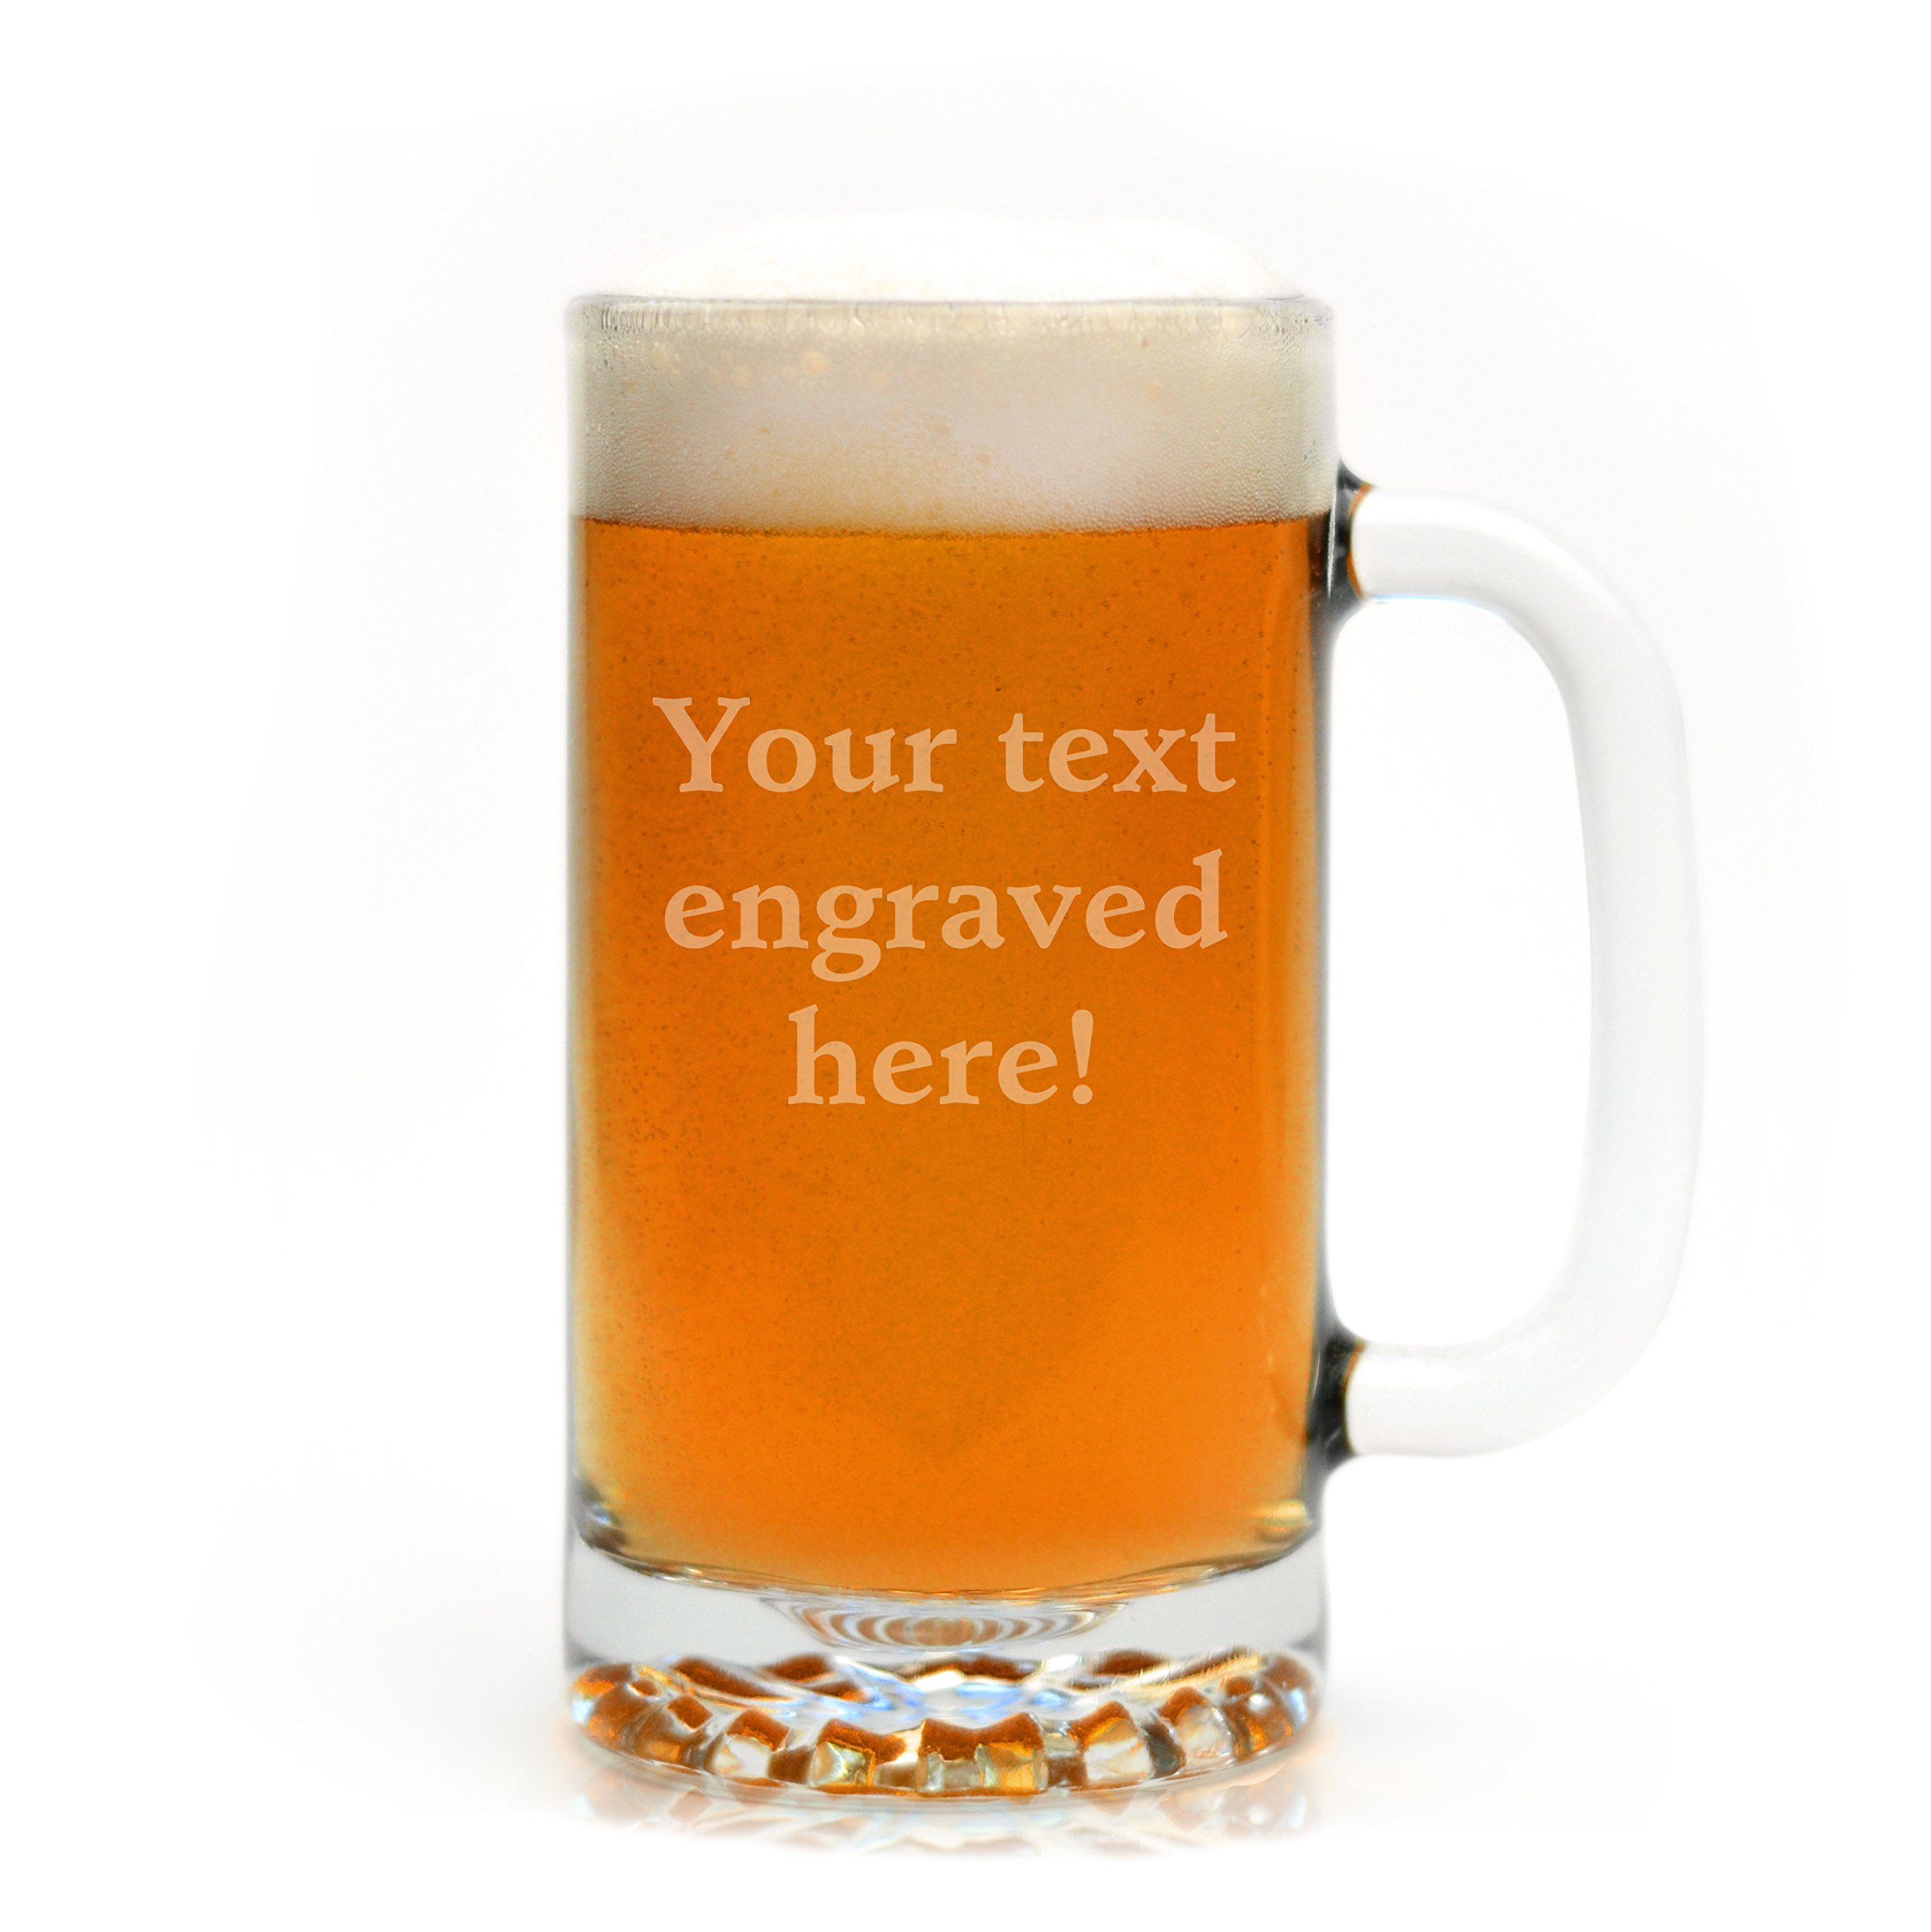 Personalized 16 oz. Beer Mug Engraved with Your Custom Text